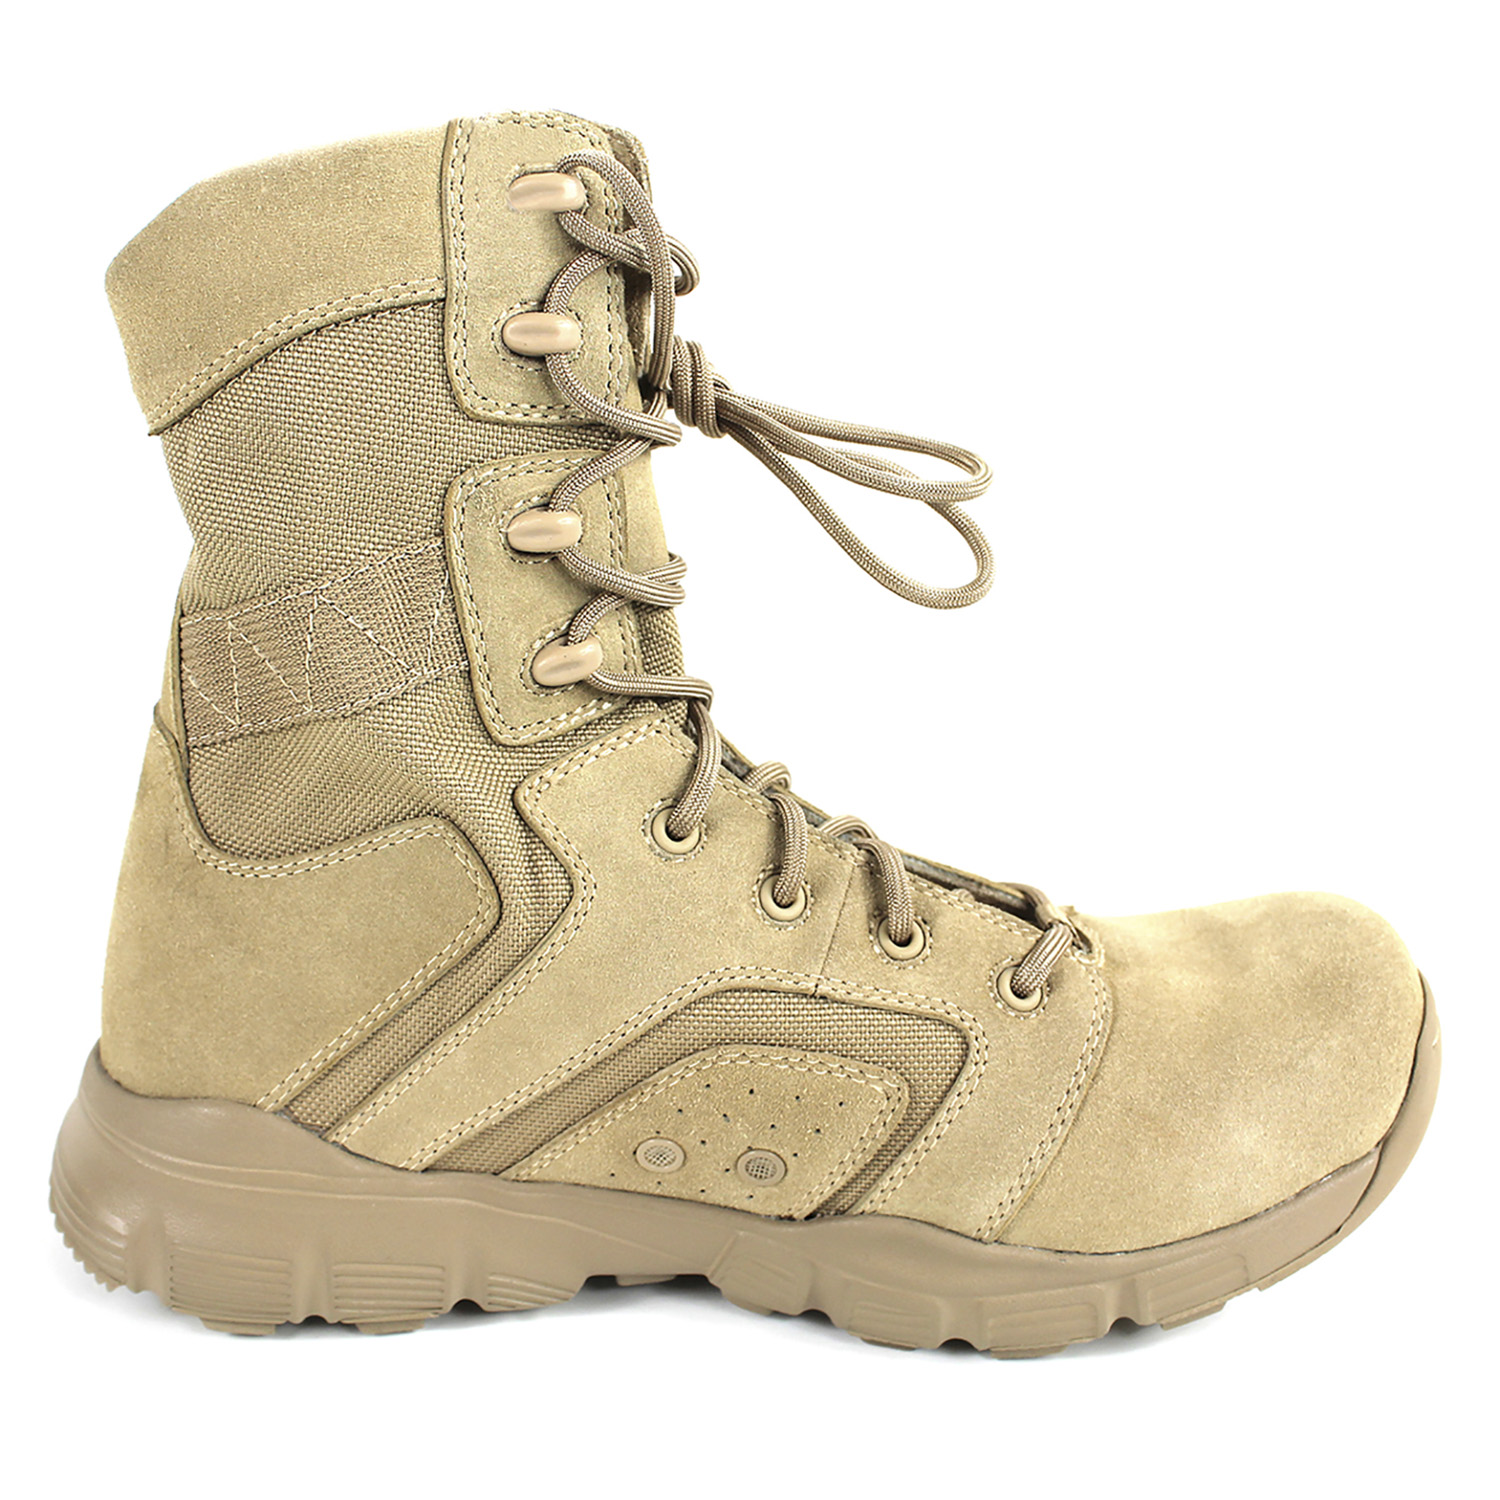 Patriot 1571 All Terrain Combat Boot